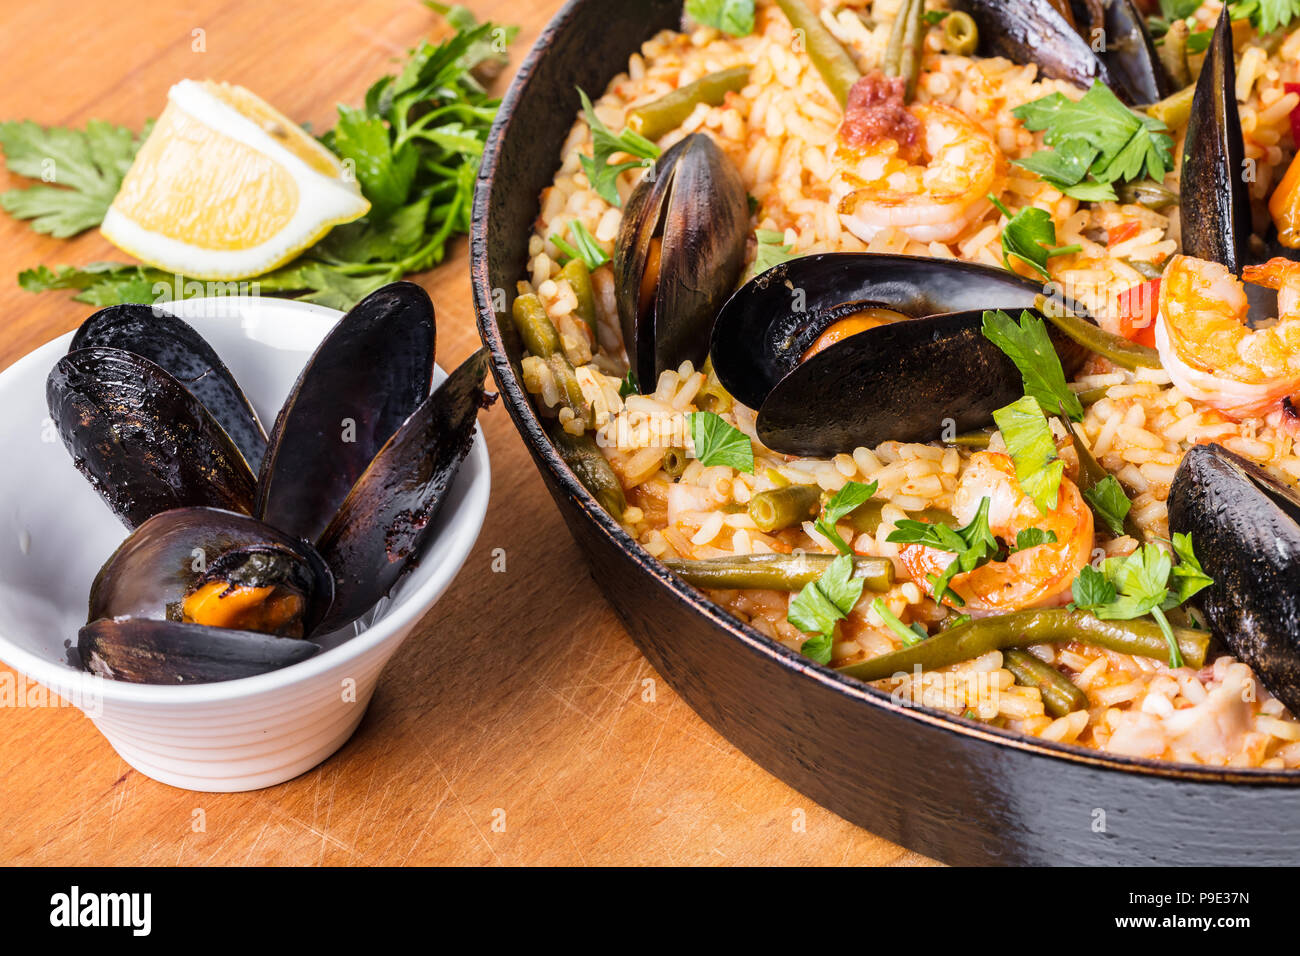 Spanish cuisine, paella with seafood and vegetables - Stock Image